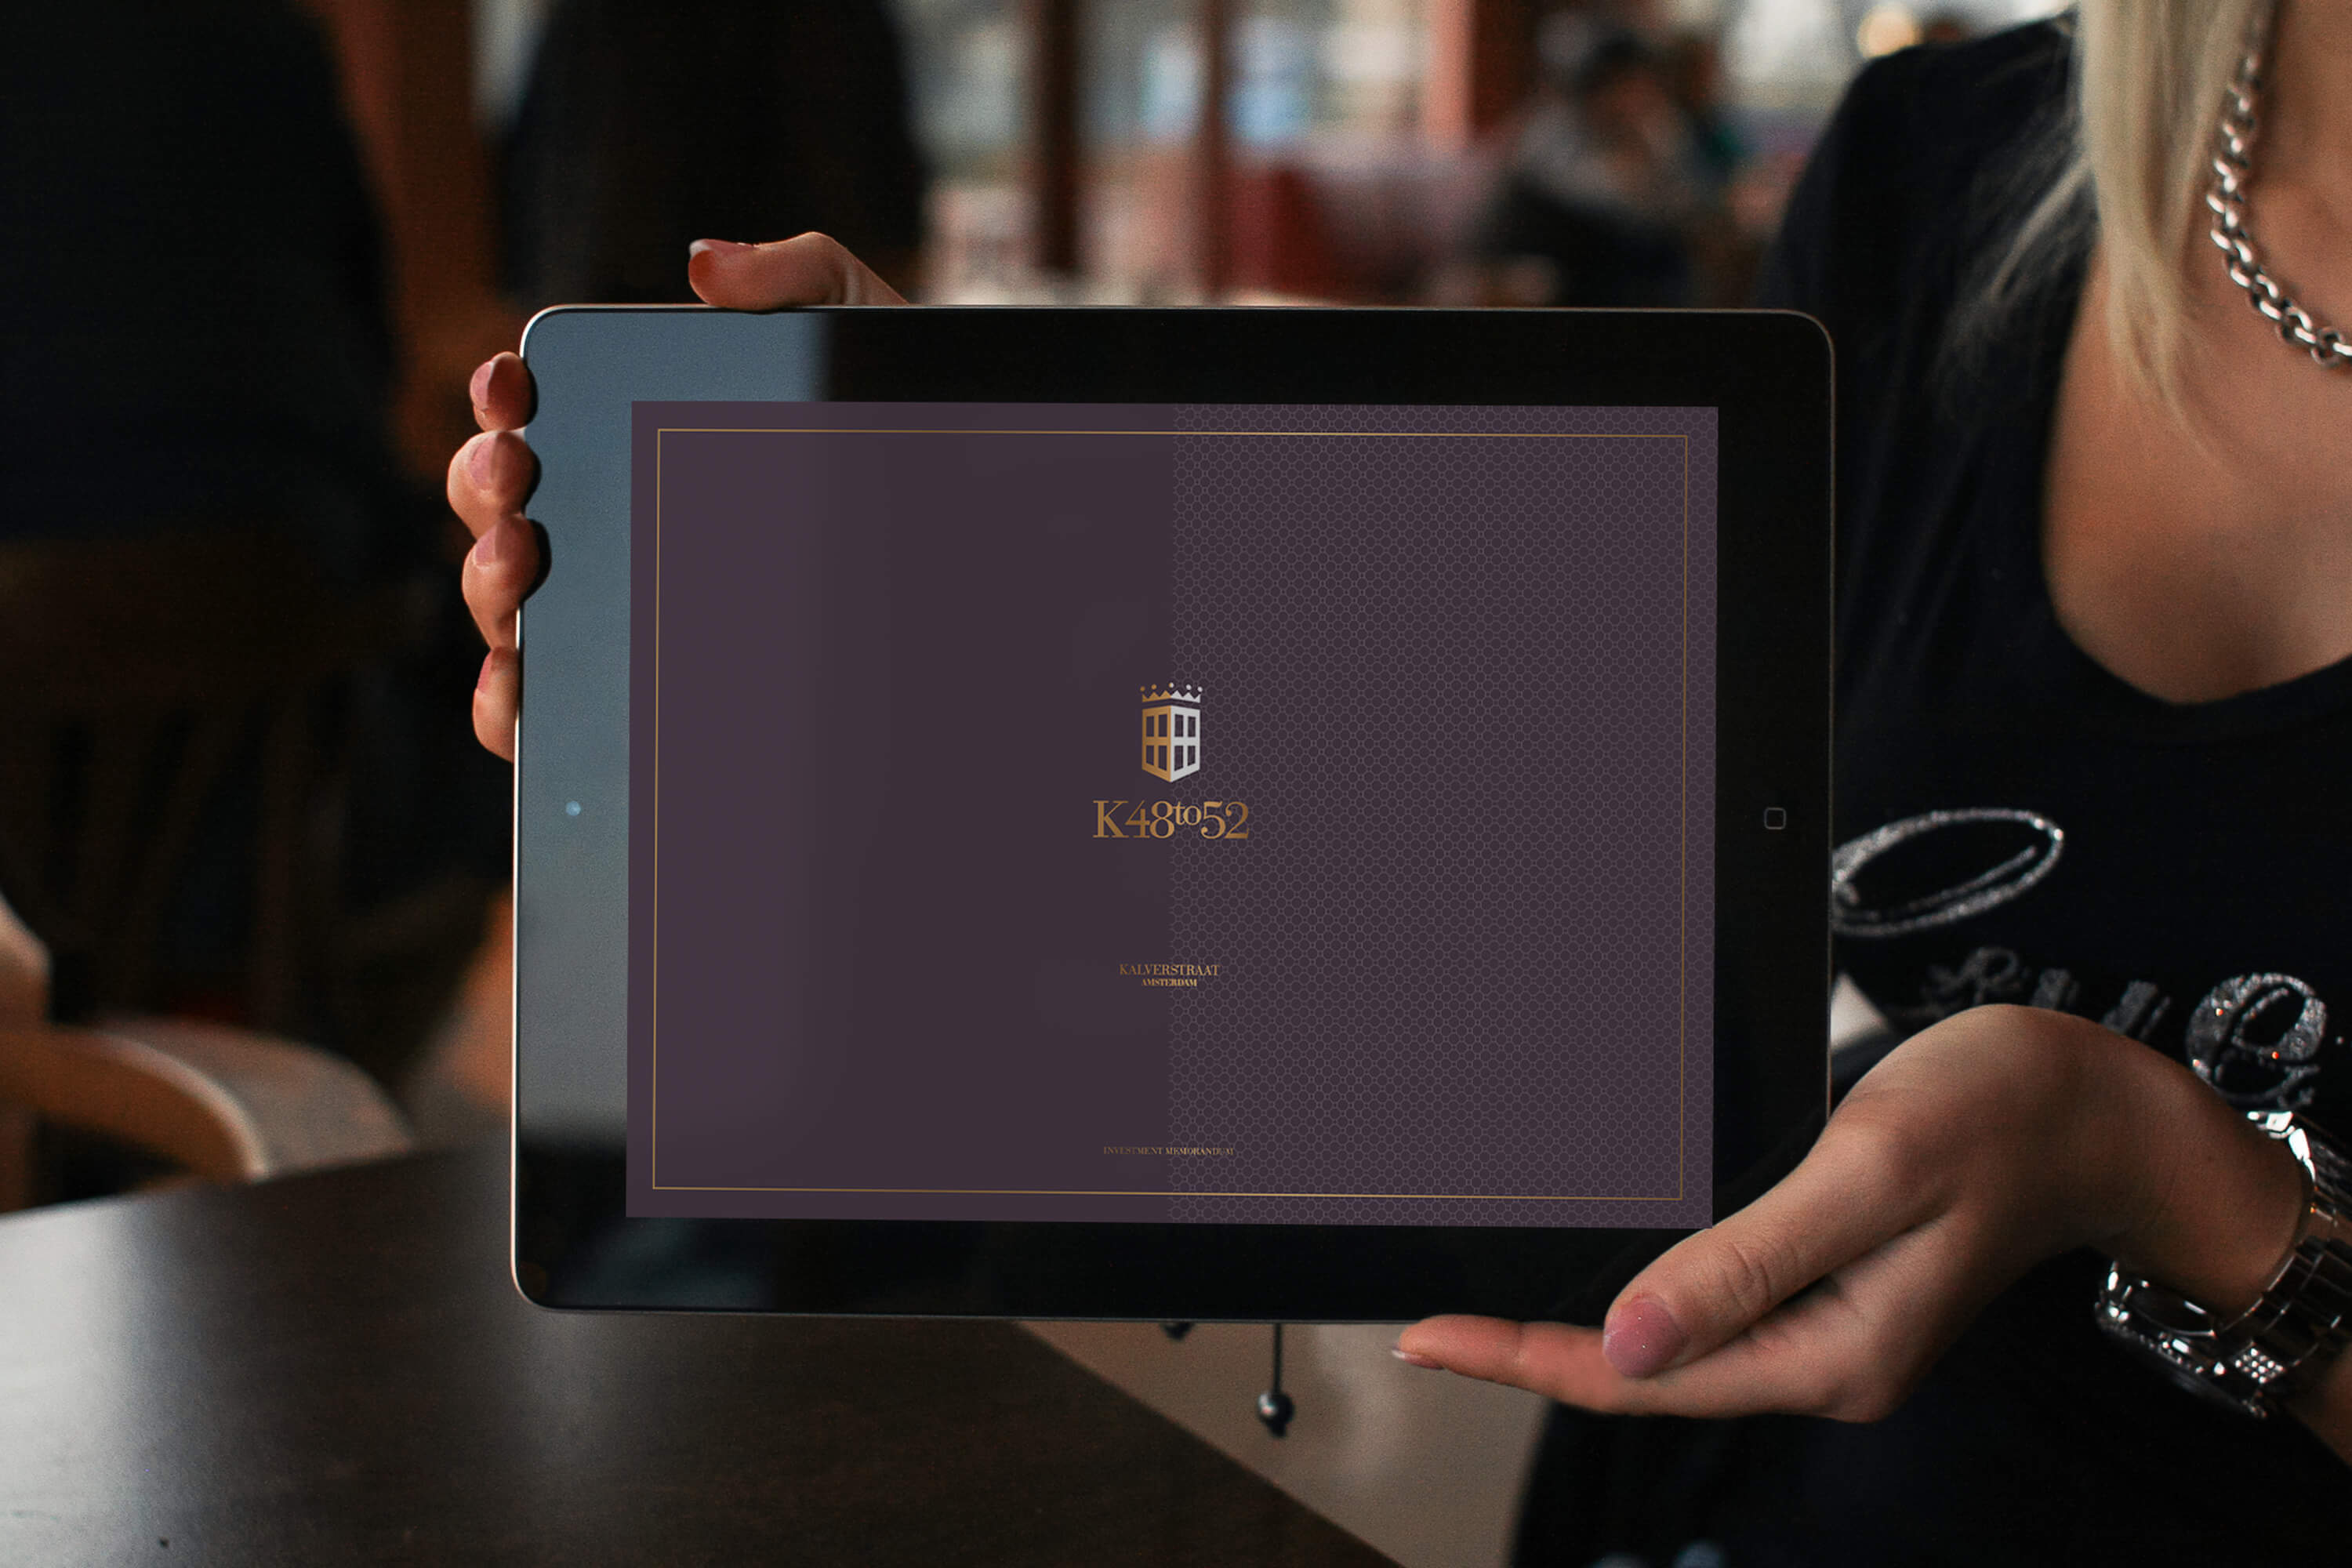 A tablet displaying the front cover design for the JLL K48to52 investment memorandum design